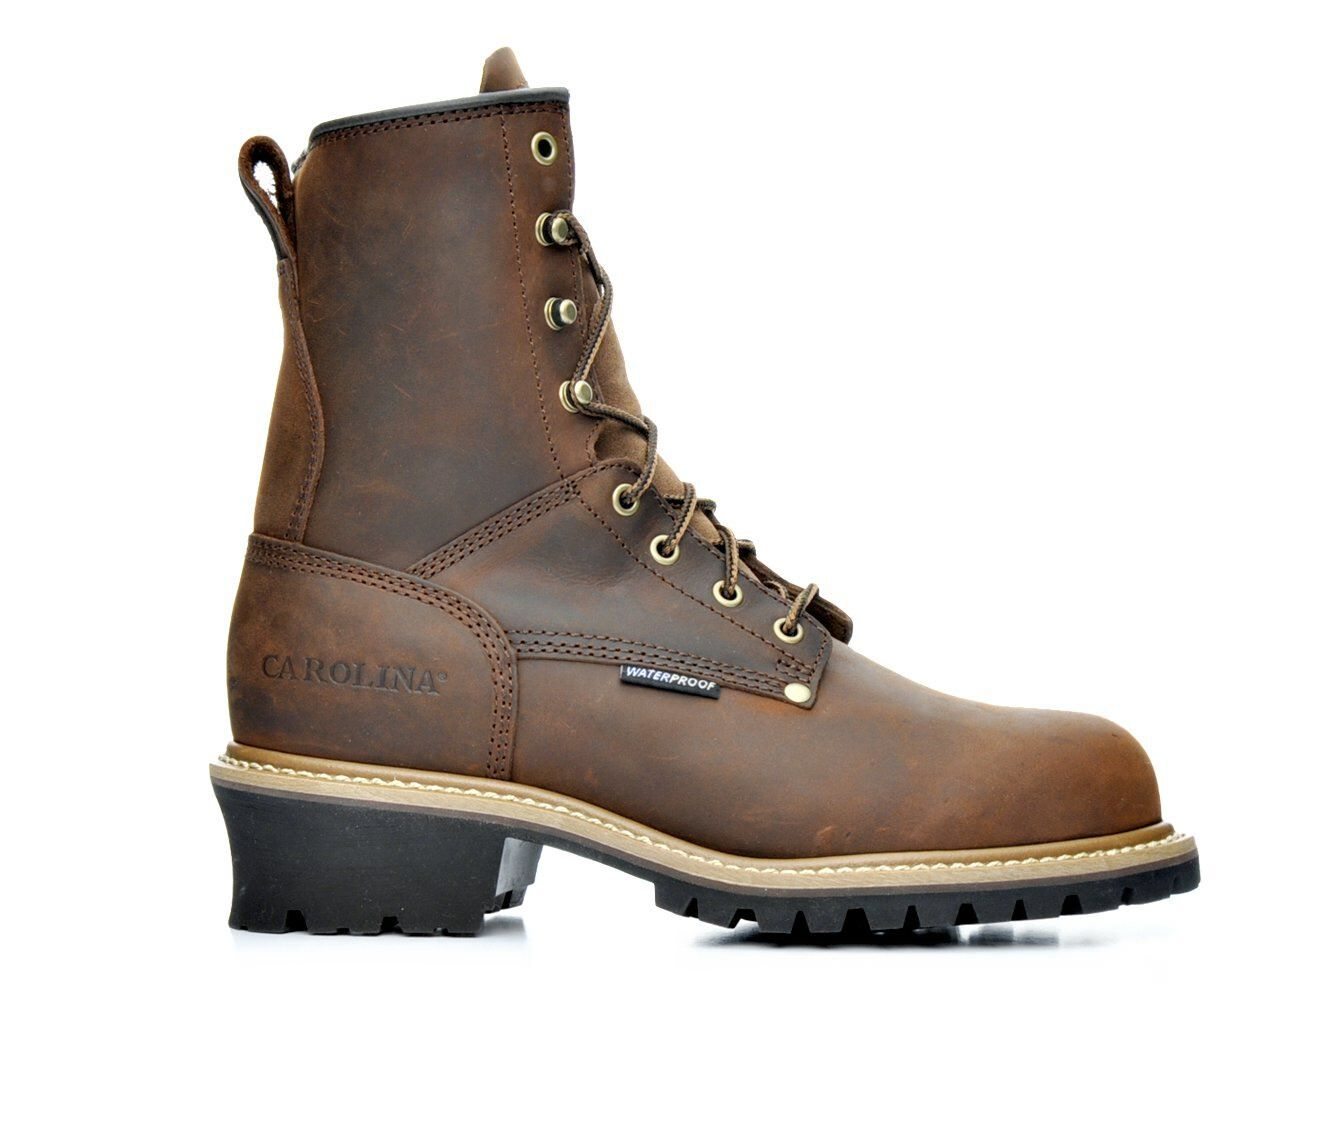 Men's Carolina Boots CA9821 8 In Steel Toe Waterproof Logging Work Boots outlet locations for sale cheap 2014 best wholesale for sale buy cheap with paypal fnMbiTca